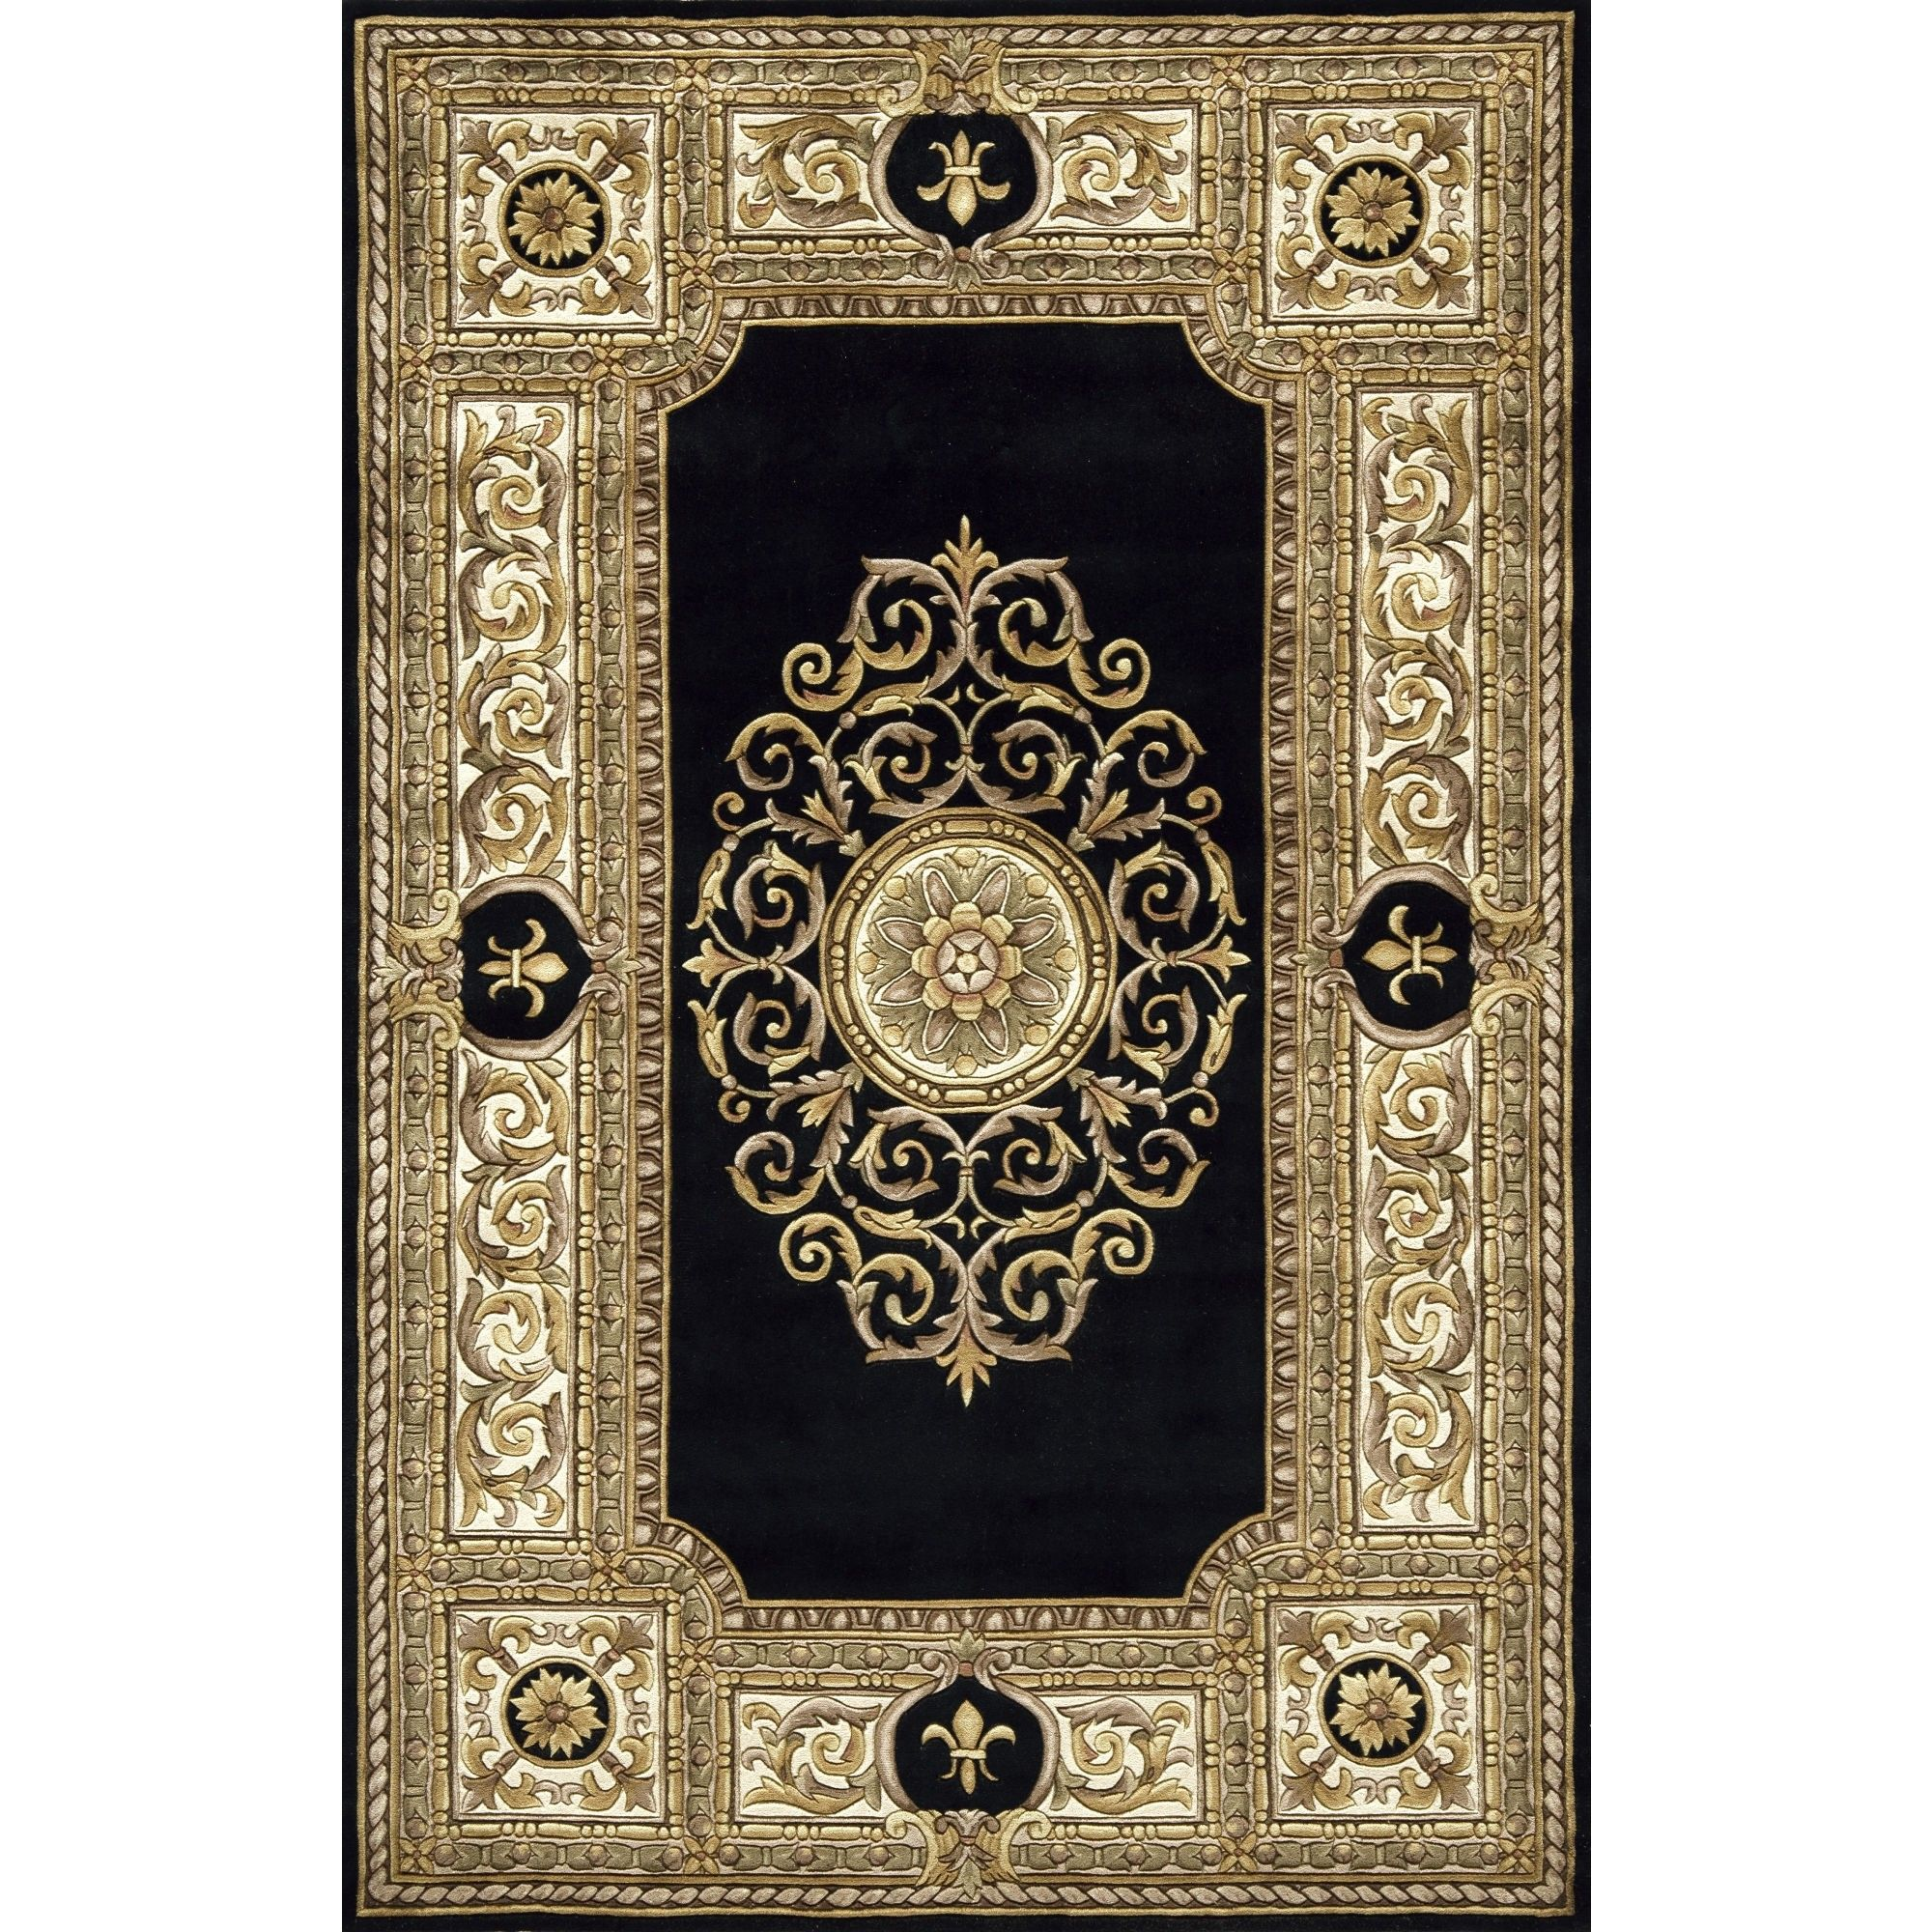 Character Harrison Devaux Prefers This Kind Of Persian Rug Dark With Blacks Browns